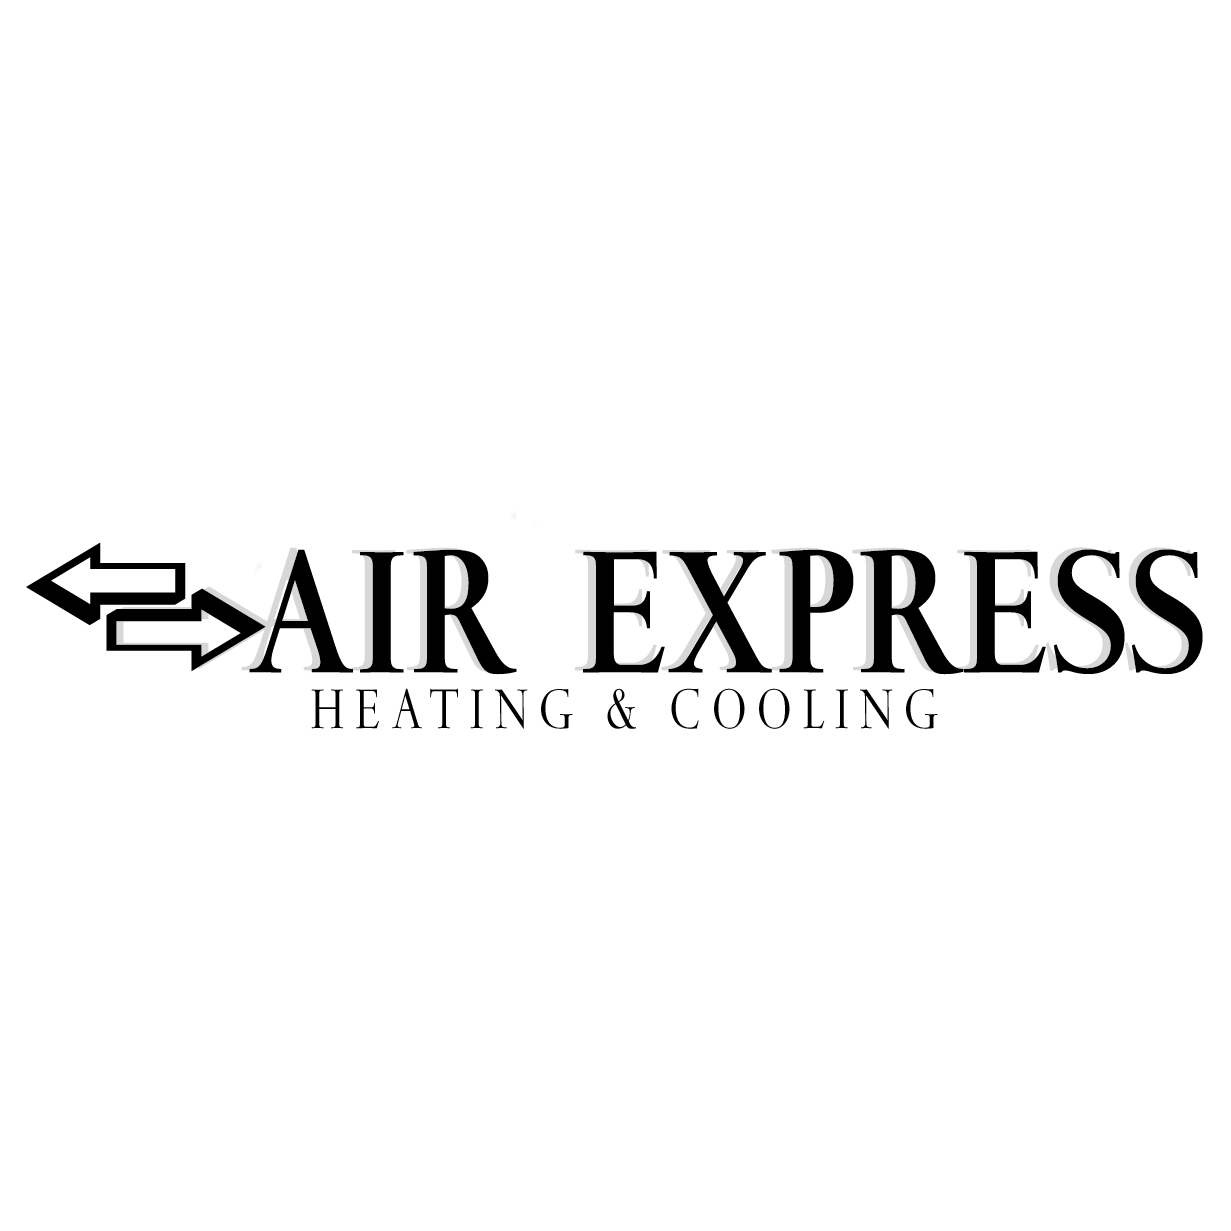 Air Express Heating & Cooling